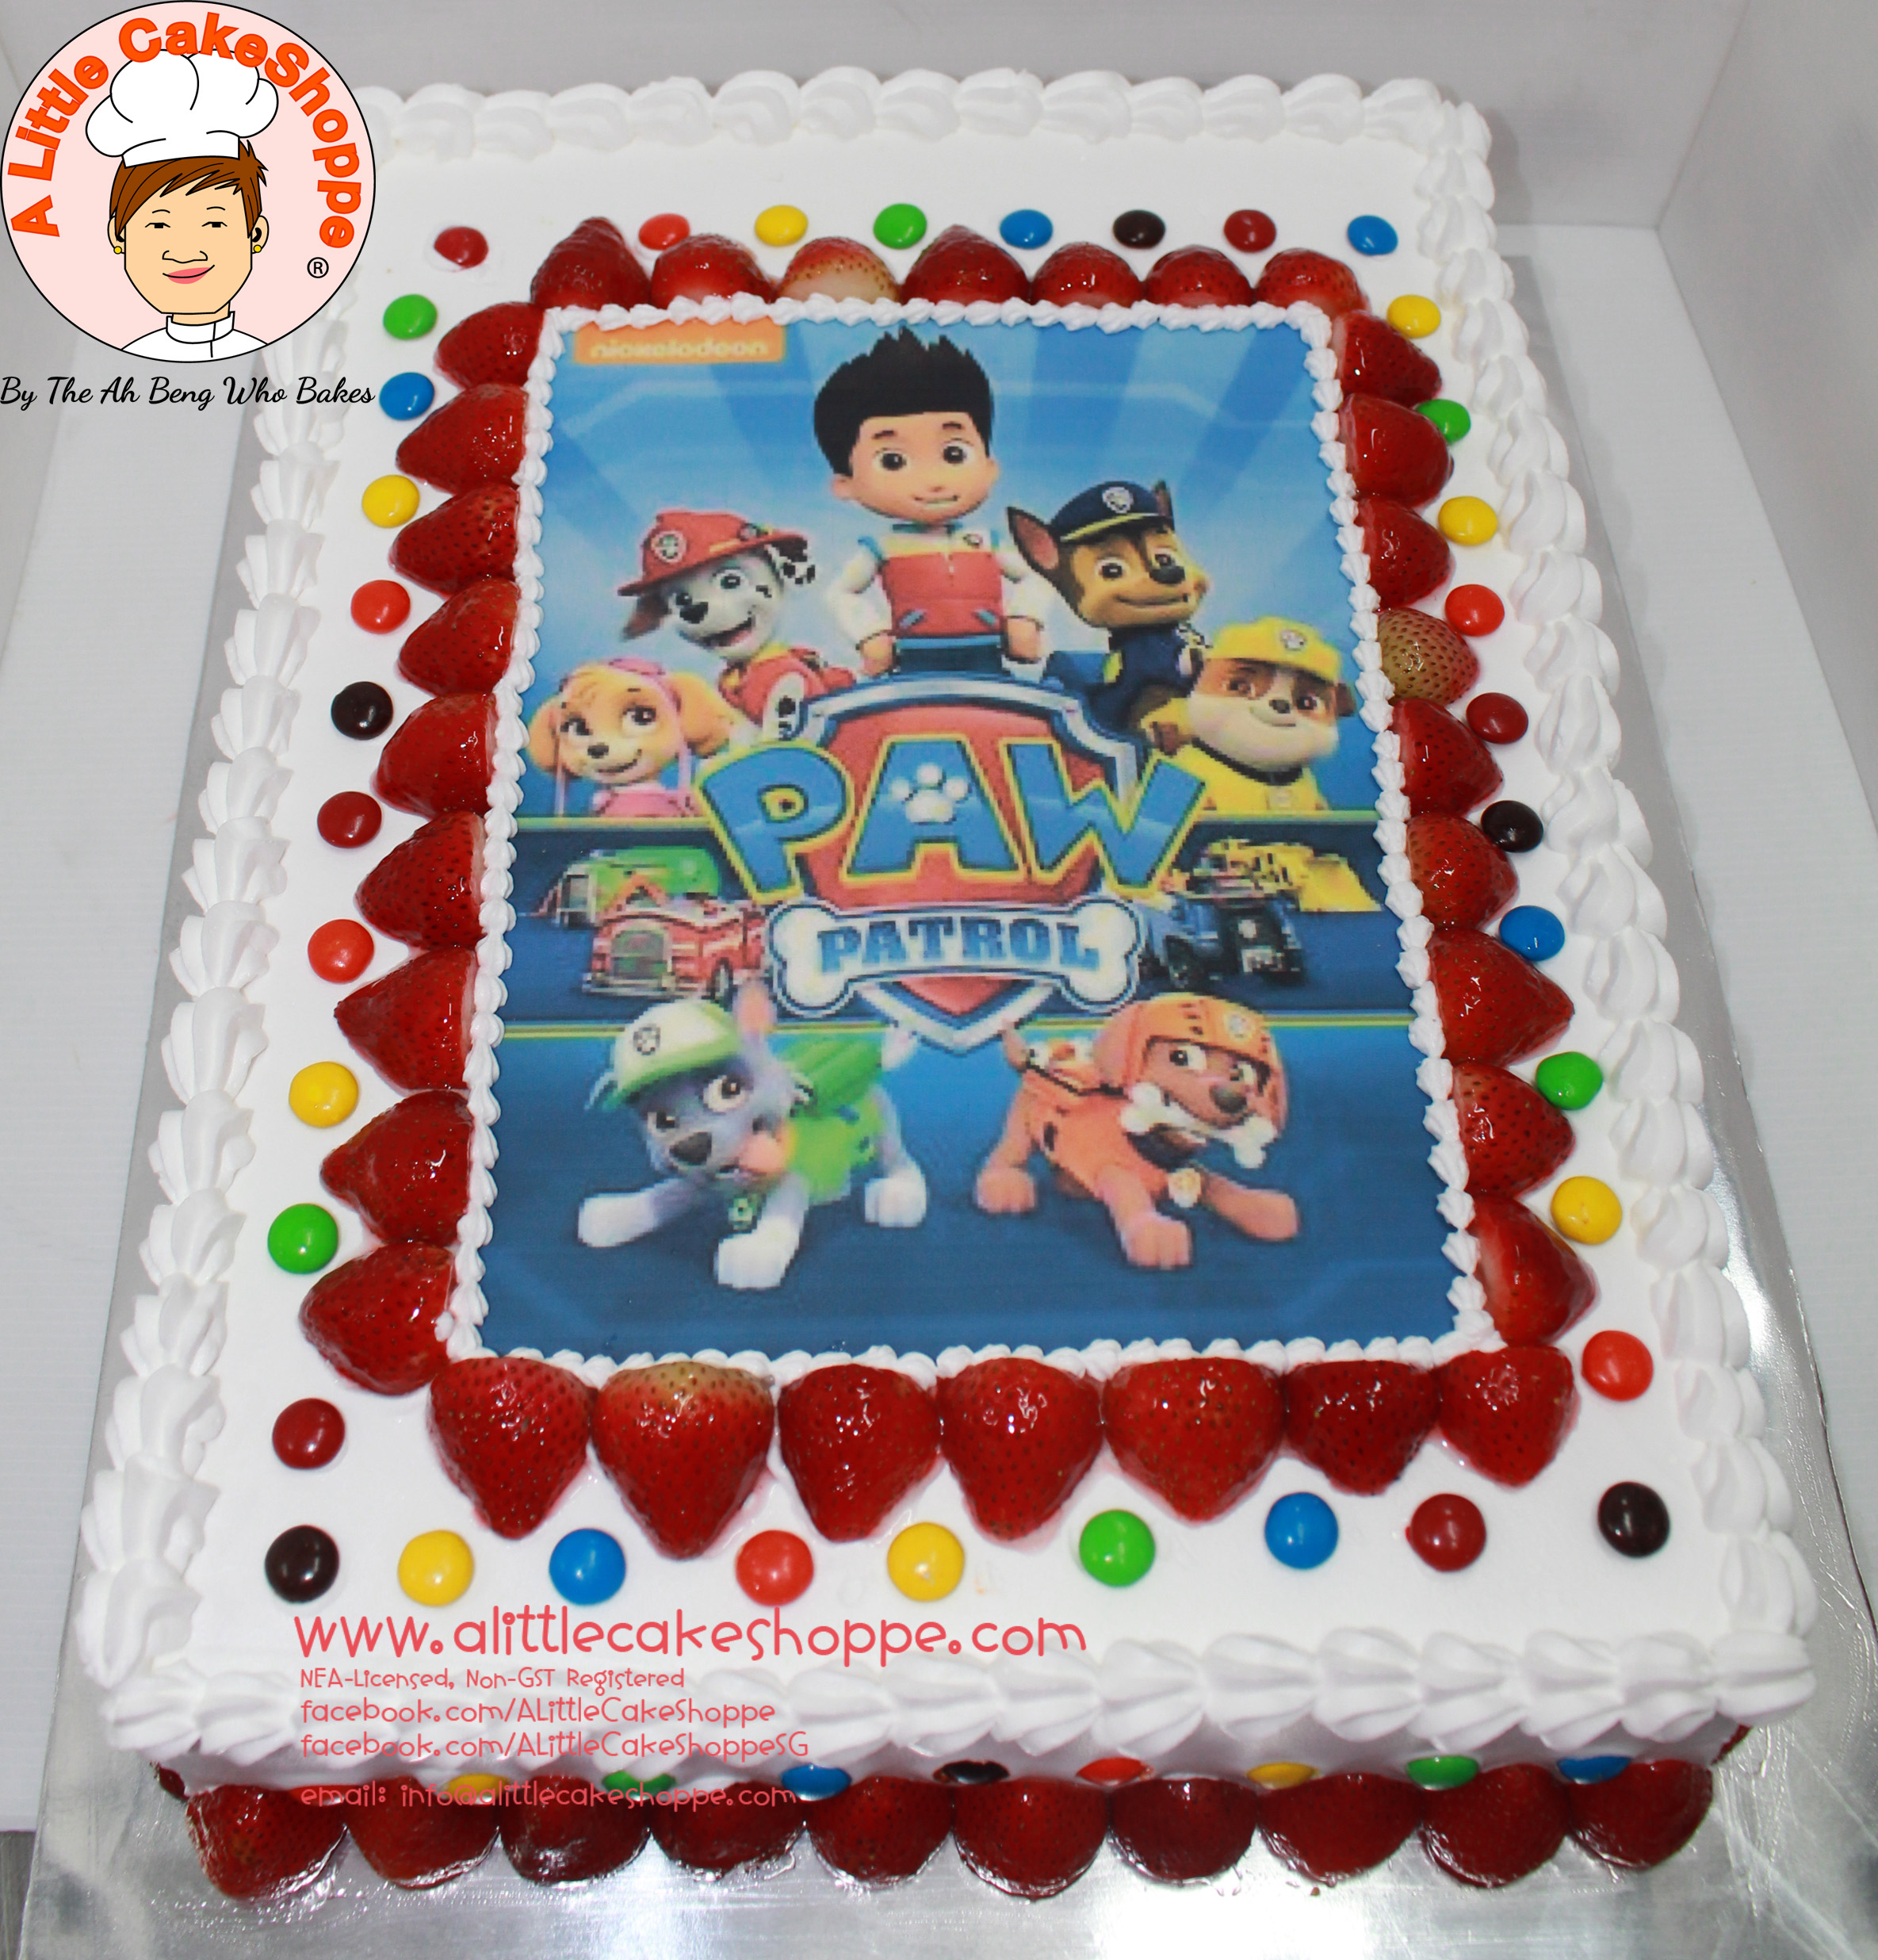 Best Customised Cake Shop Singapore custom cake 2D 3D birthday cake cupcakes desserts wedding corporate events anniversary 1st birthday 21st birthday fondant fresh cream buttercream cakes alittlecakeshoppe a little cake shoppe compliments review singapore bakers SG cake shop cakeshop ah beng who bakes paw patrol